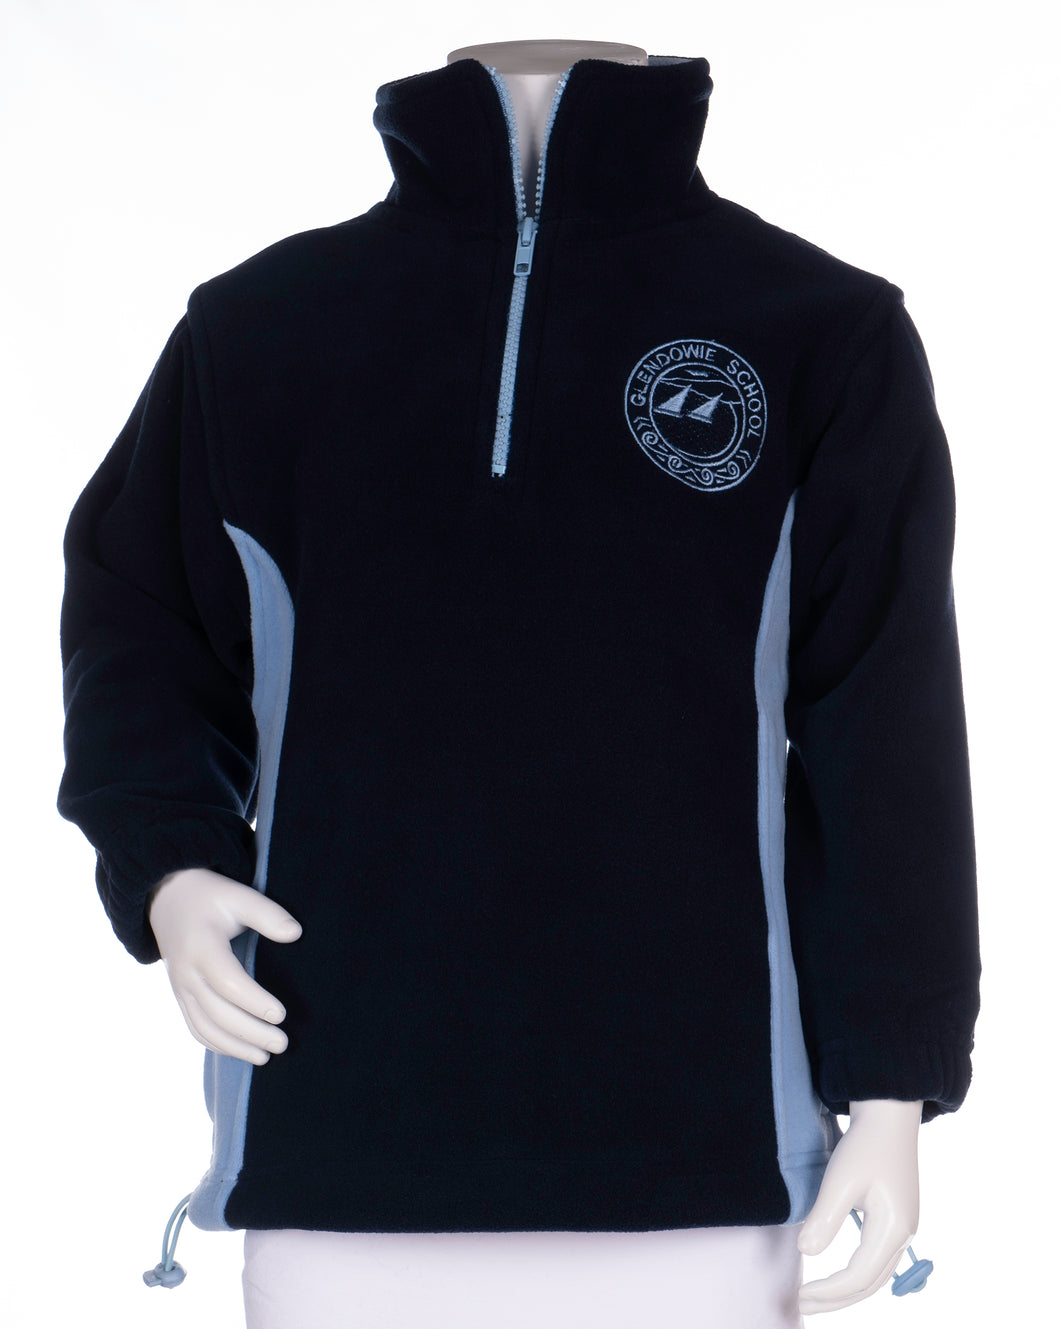 Glendowie School - Polar Fleece Jumper